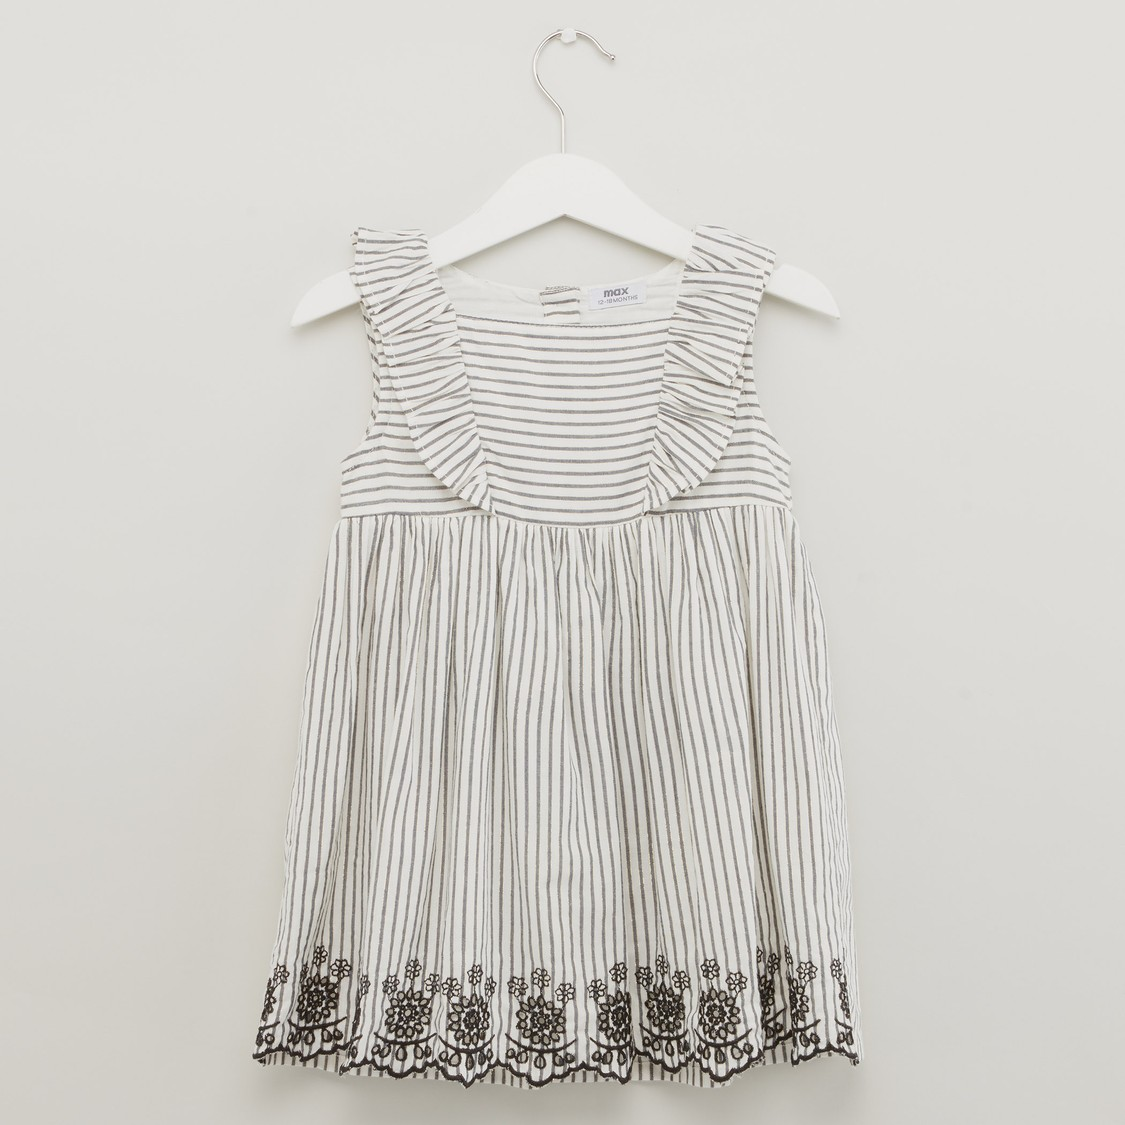 Striped Sleeveless Dress with Round Neck and Frill Detail